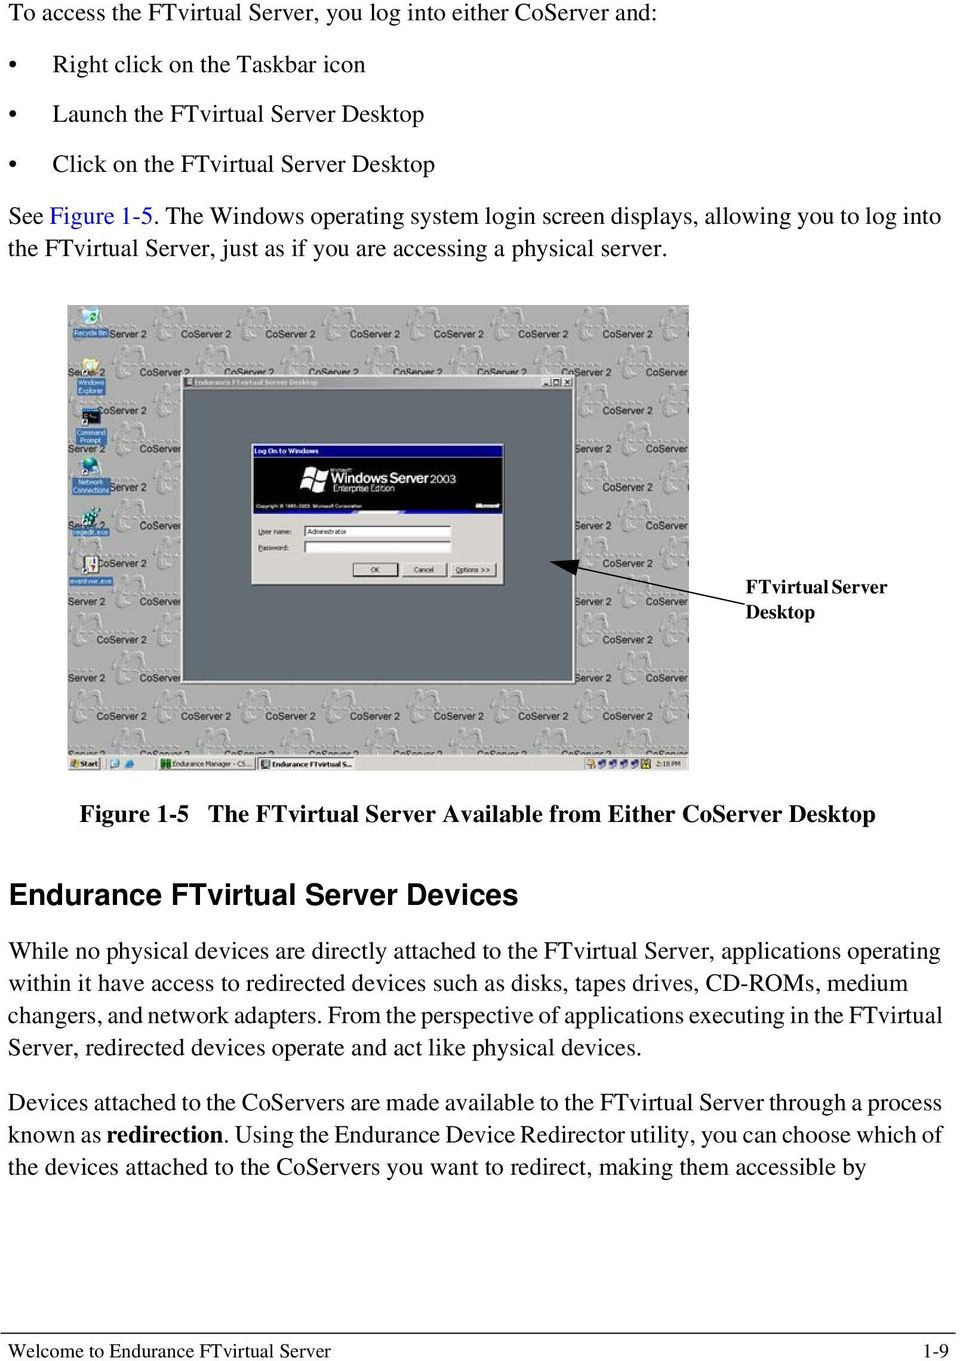 FTvirtual Server Desktop Figure 1-5 The FTvirtual Server Available from Either CoServer Desktop Endurance FTvirtual Server Devices While no physical devices are directly attached to the FTvirtual